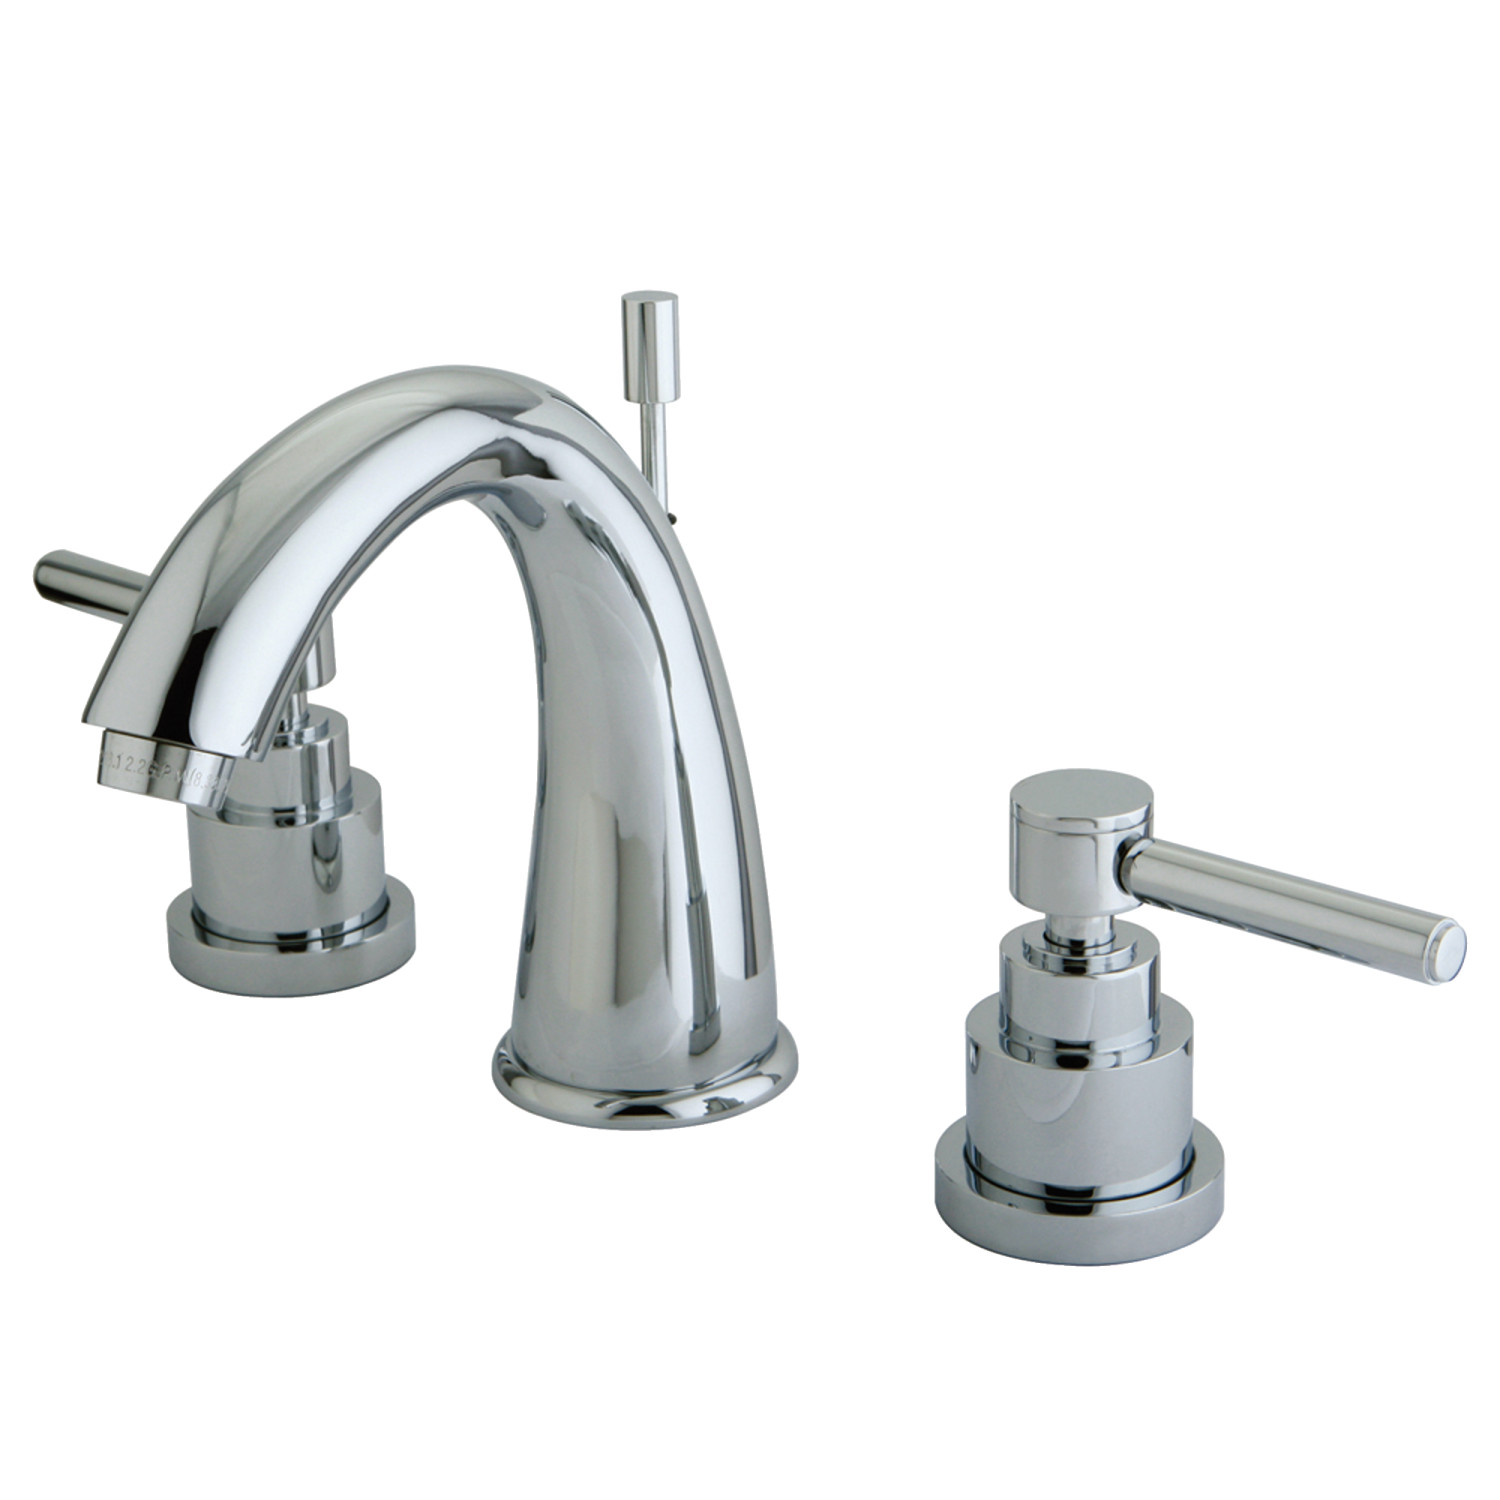 Modern Two-Handle Three-Hole Deck Mounted Widespread Bathroom Faucet with Brass Pop-Up in Polished Chrome with 4 Finish Options